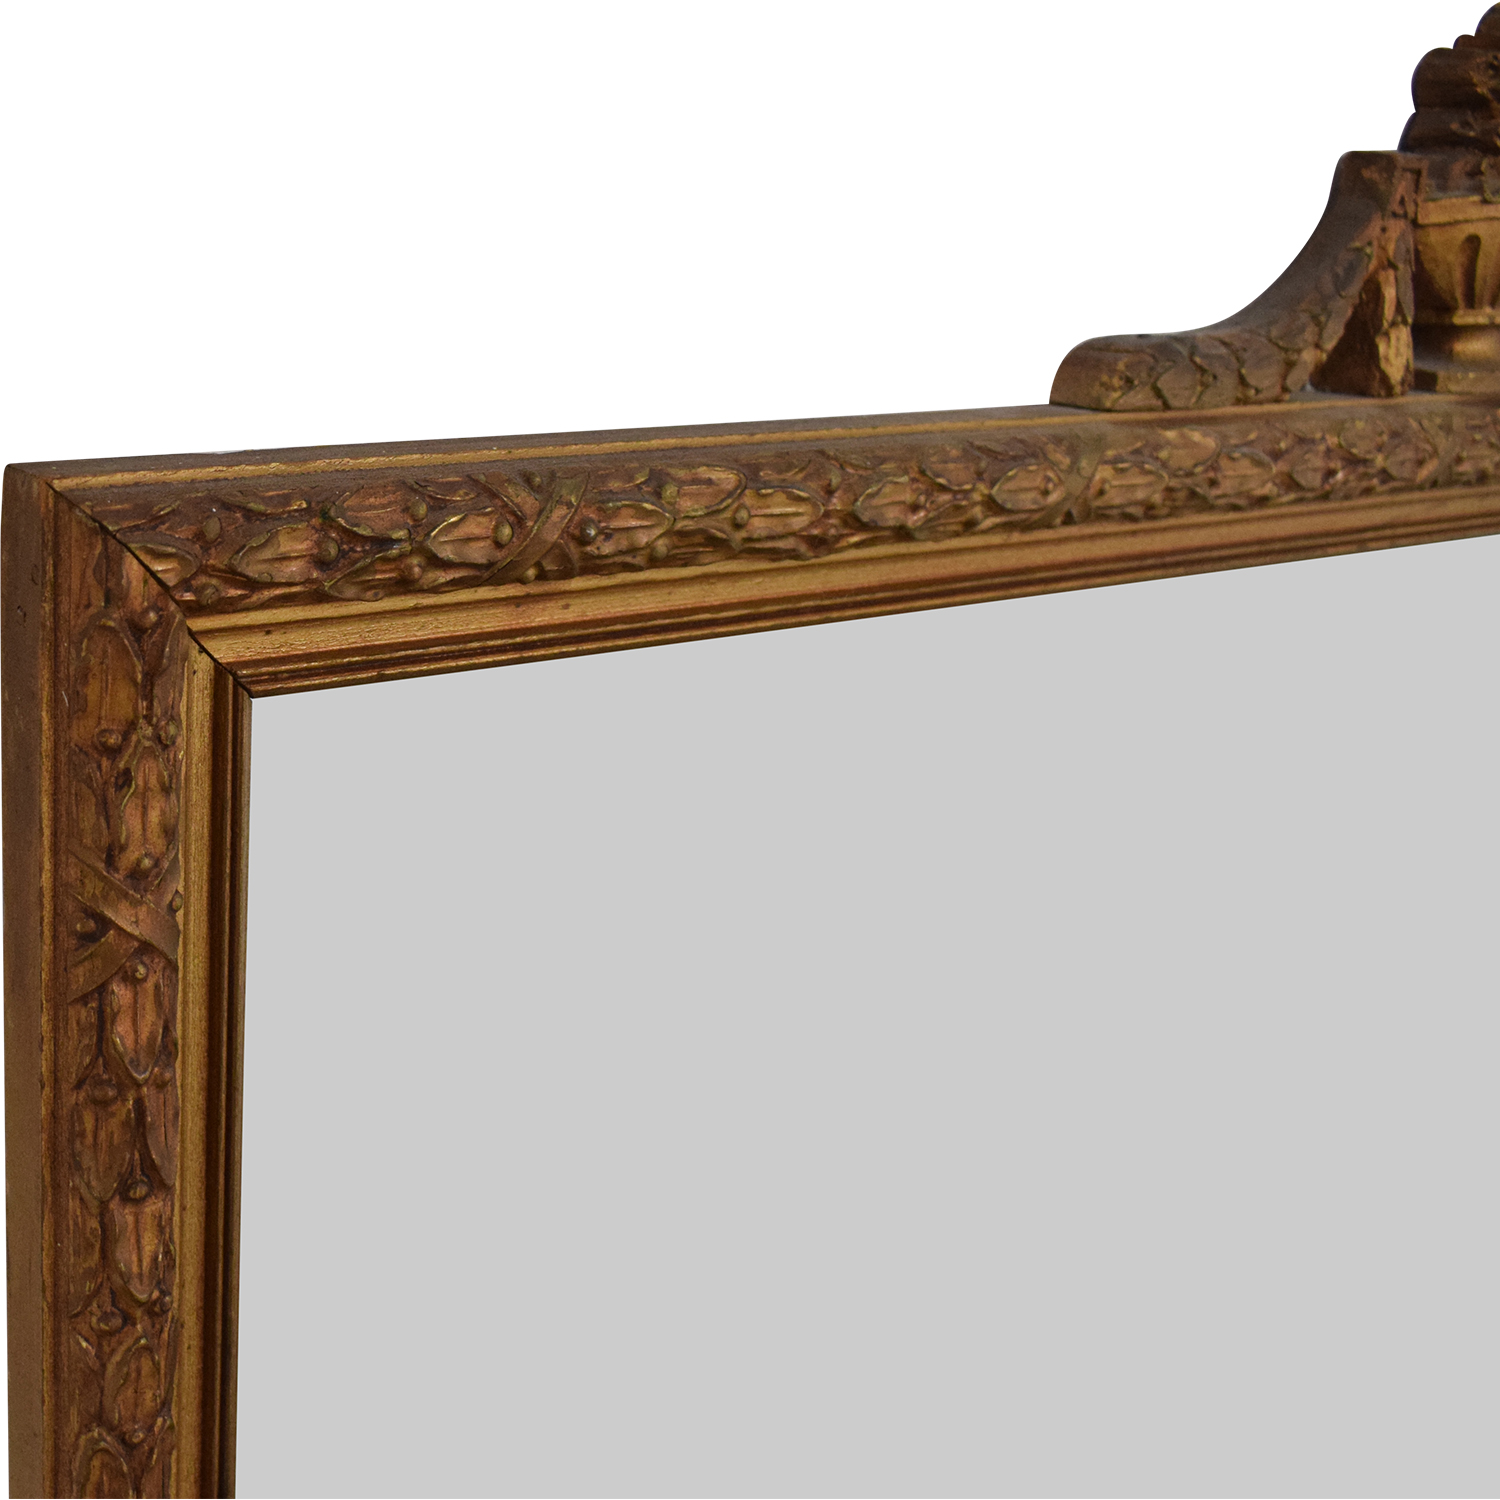 White Seid Products Vintage Framed Mirror discount